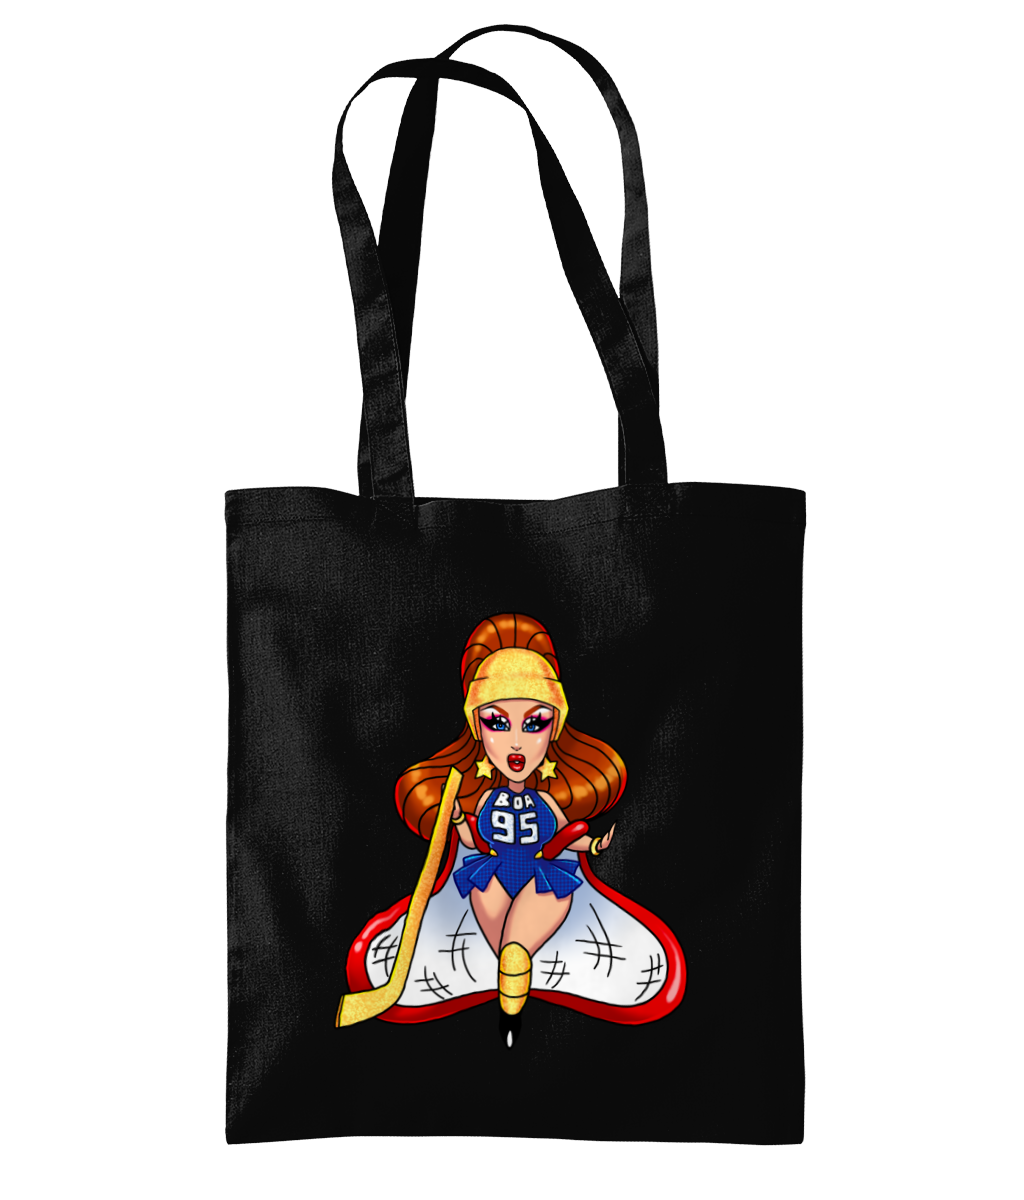 BOA - Hockey Queen Of The North Tote Bag - SNATCHED MERCH